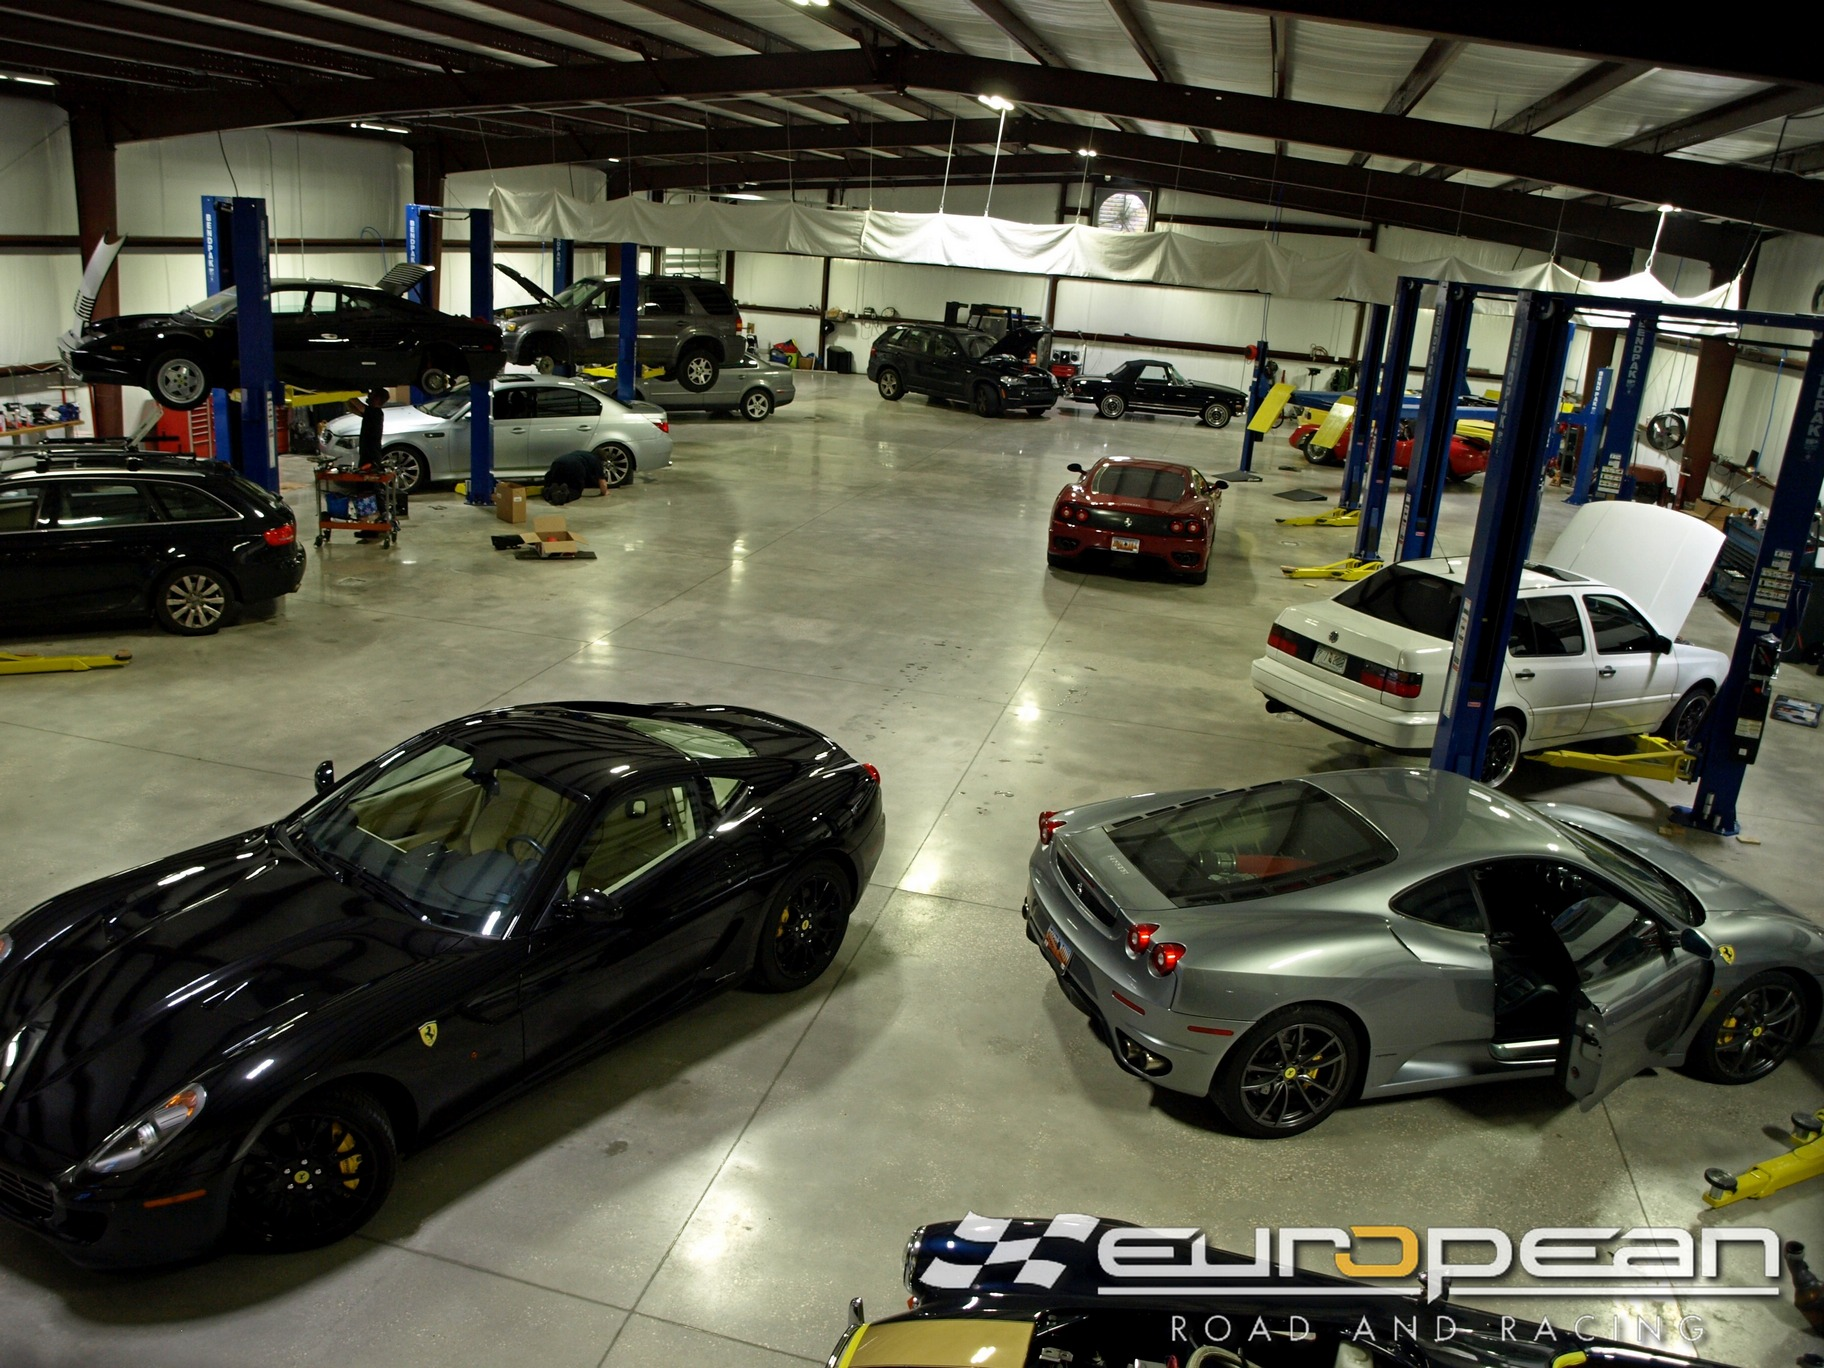 European Road & Racing | Charleston Luxury Car Service